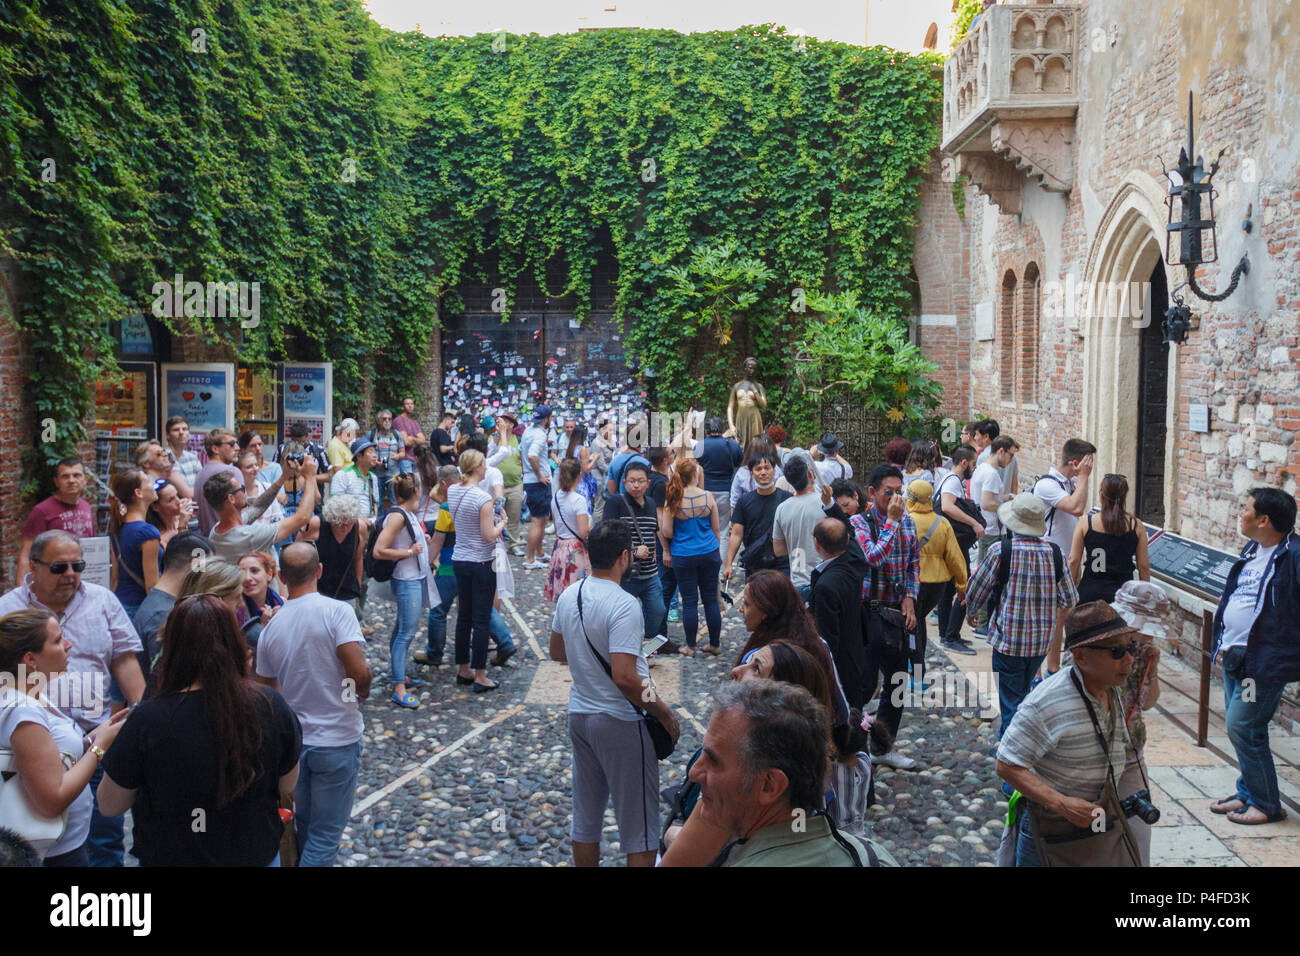 Verona, Italy – May 26, 2017: Crowed patio full of tourists visiting the statue under the famous balcony of Juliet's house Stock Photo